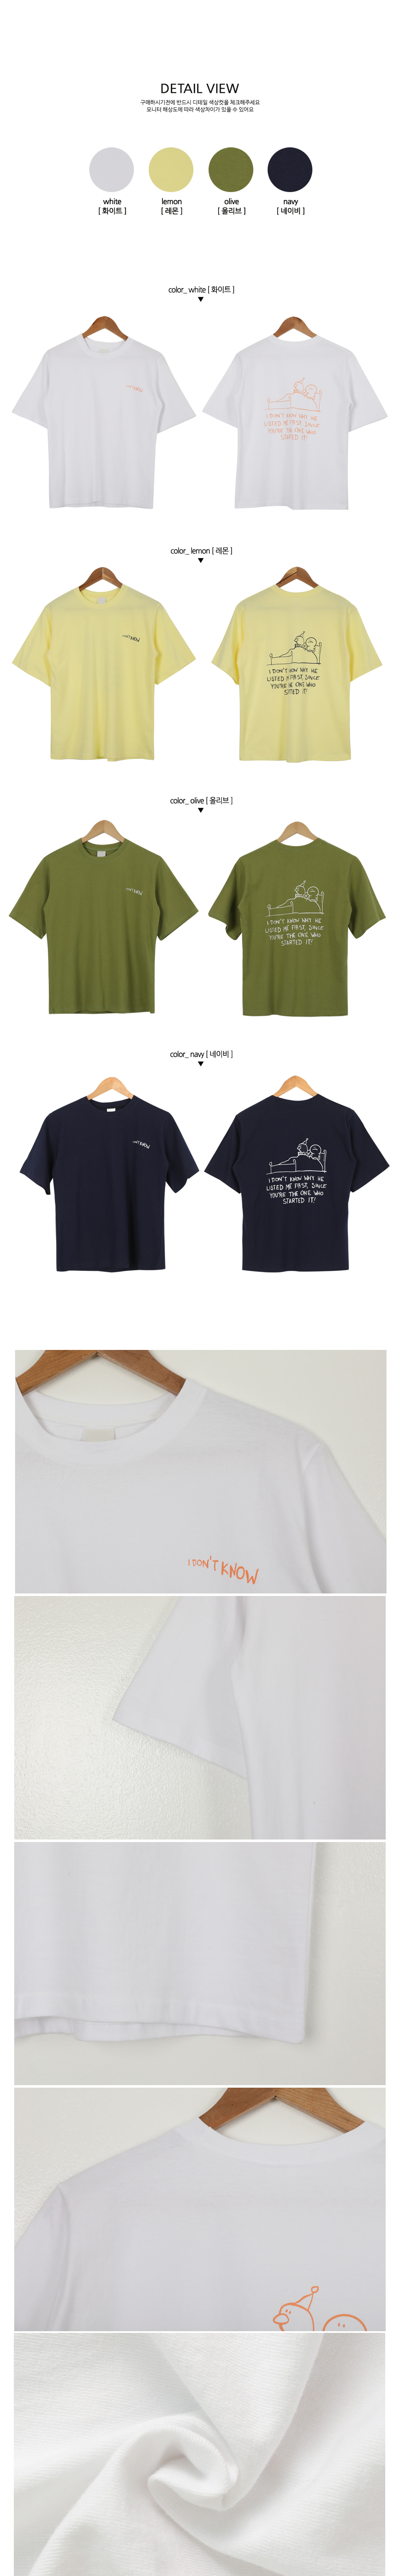 Nolly Round T-shirt